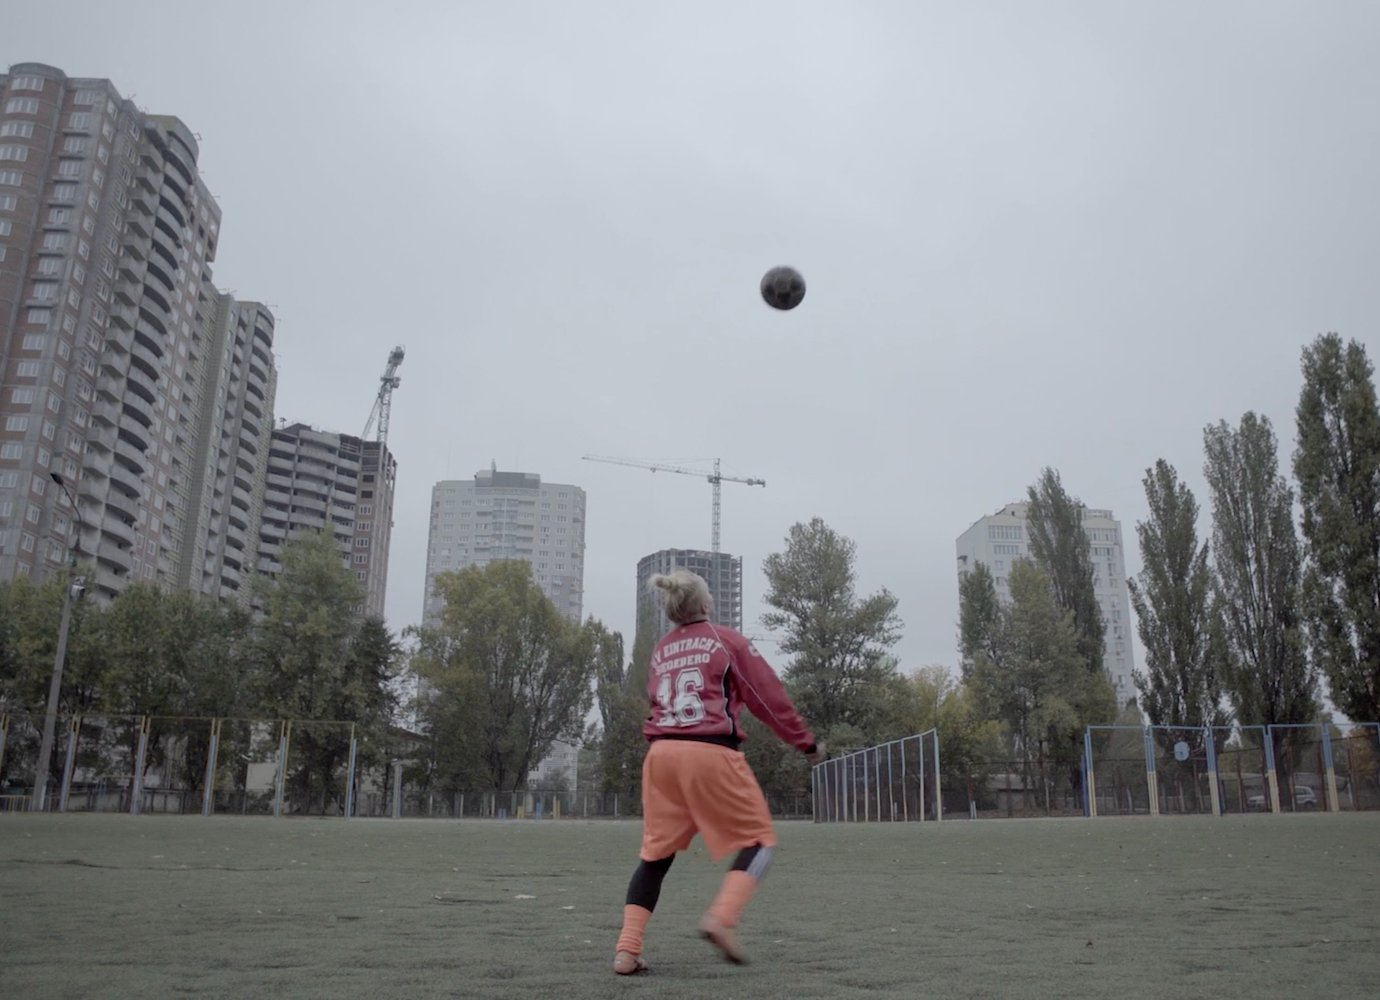 Love, war and football: 4 Ukrainian films to watch online for free